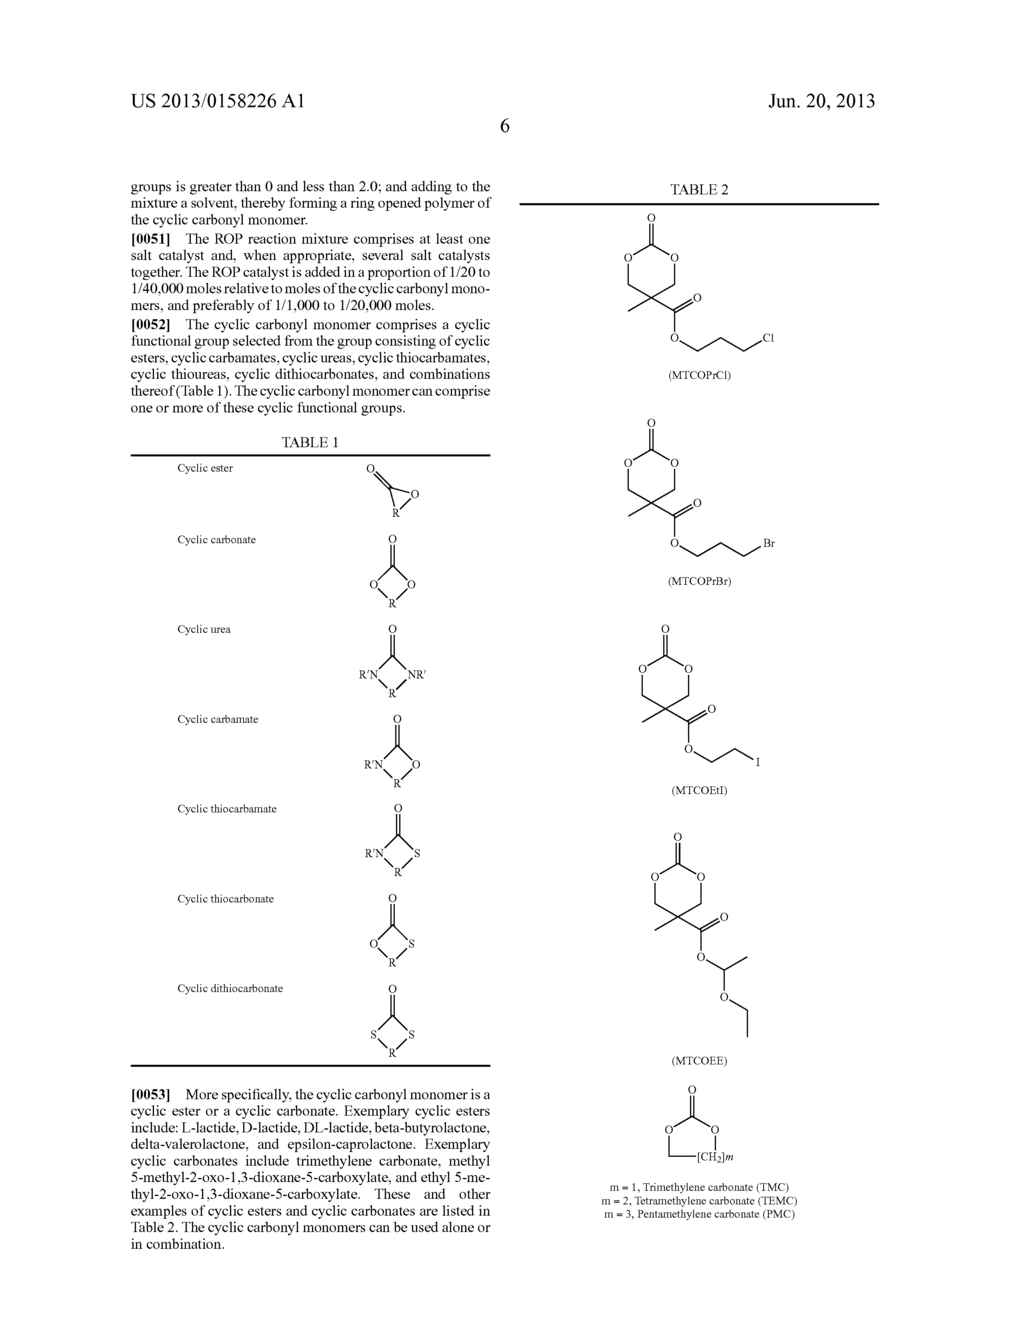 METHODS OF RING OPENING POLYMERIZATION AND CATALYSTS THEREFOR - diagram, schematic, and image 13